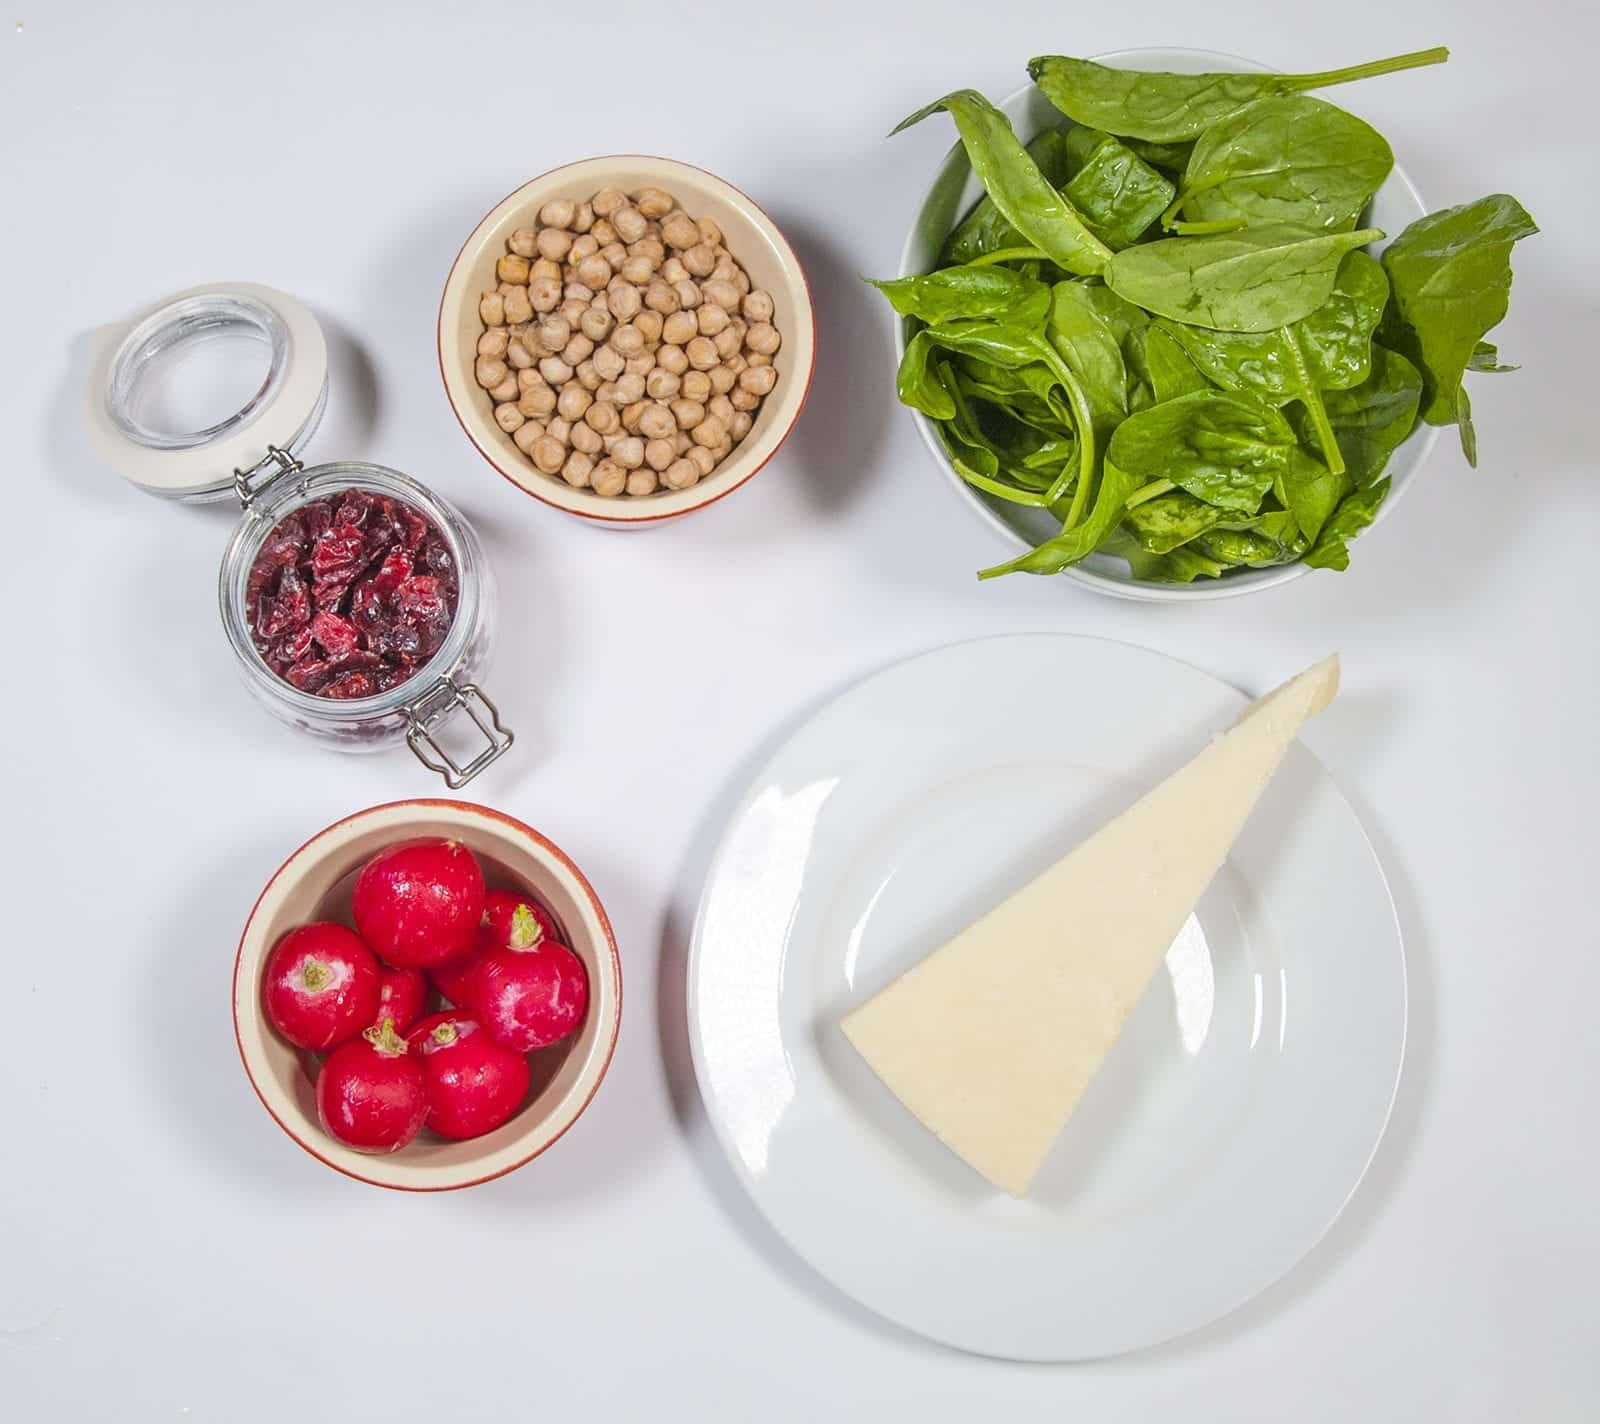 Gather the ingredients together | https://theyumyumclub.com/2019/06/18/moroccan-chickpea-salad/